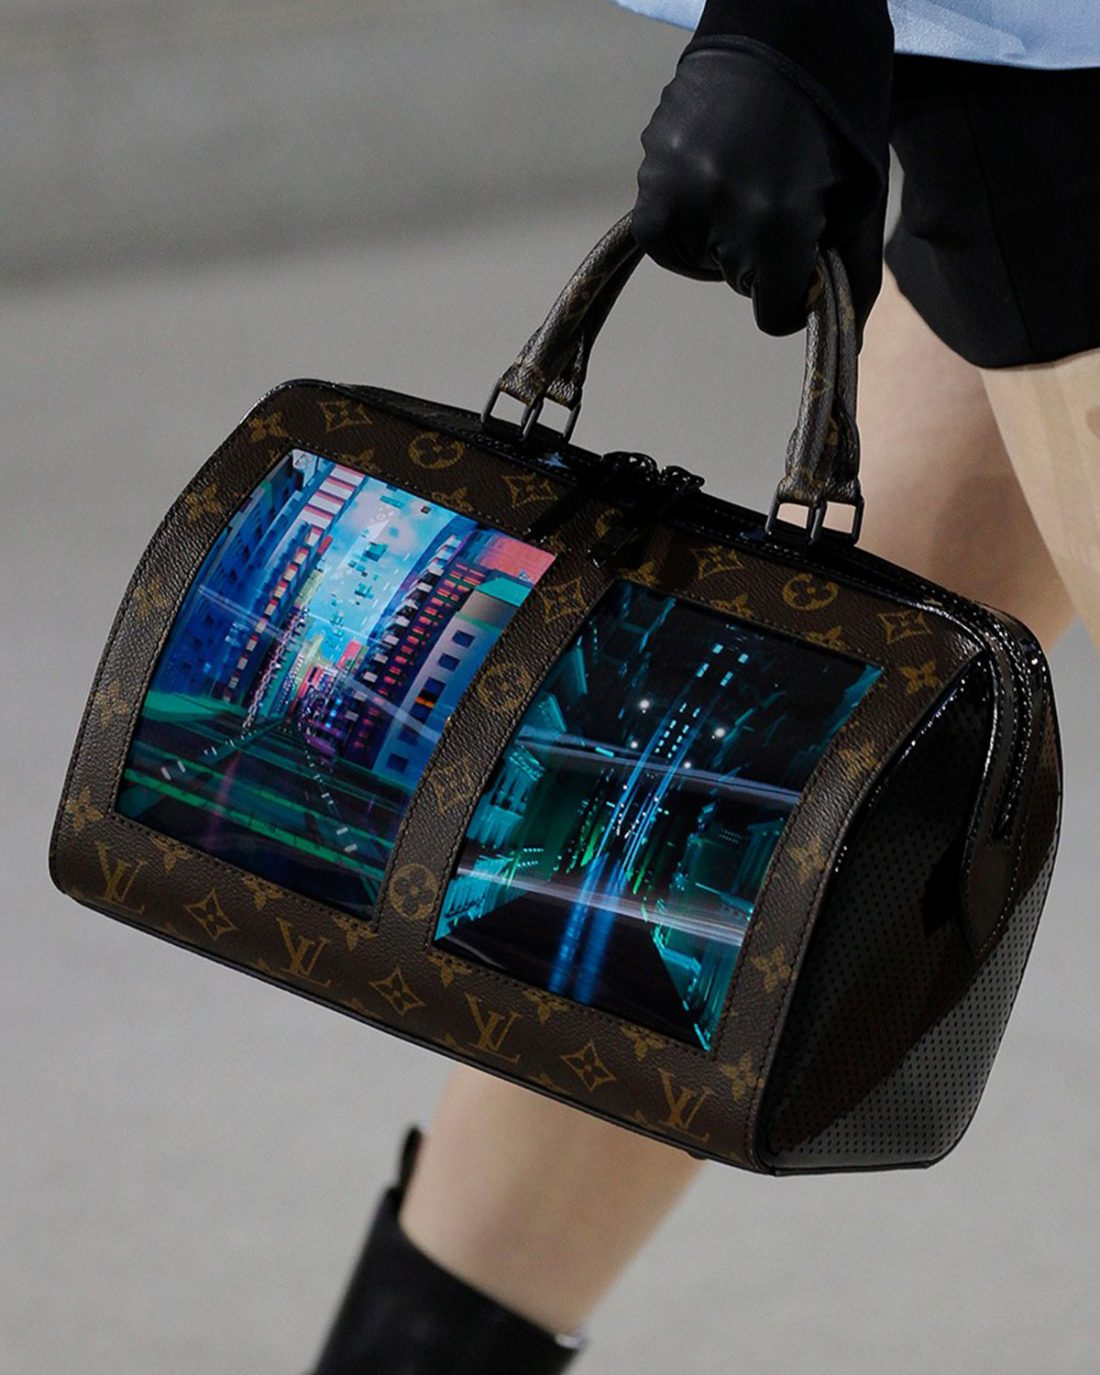 2a4d339d0c Could this Louis Vuitton Cruise 2020 LED screen bag be the future of bags?